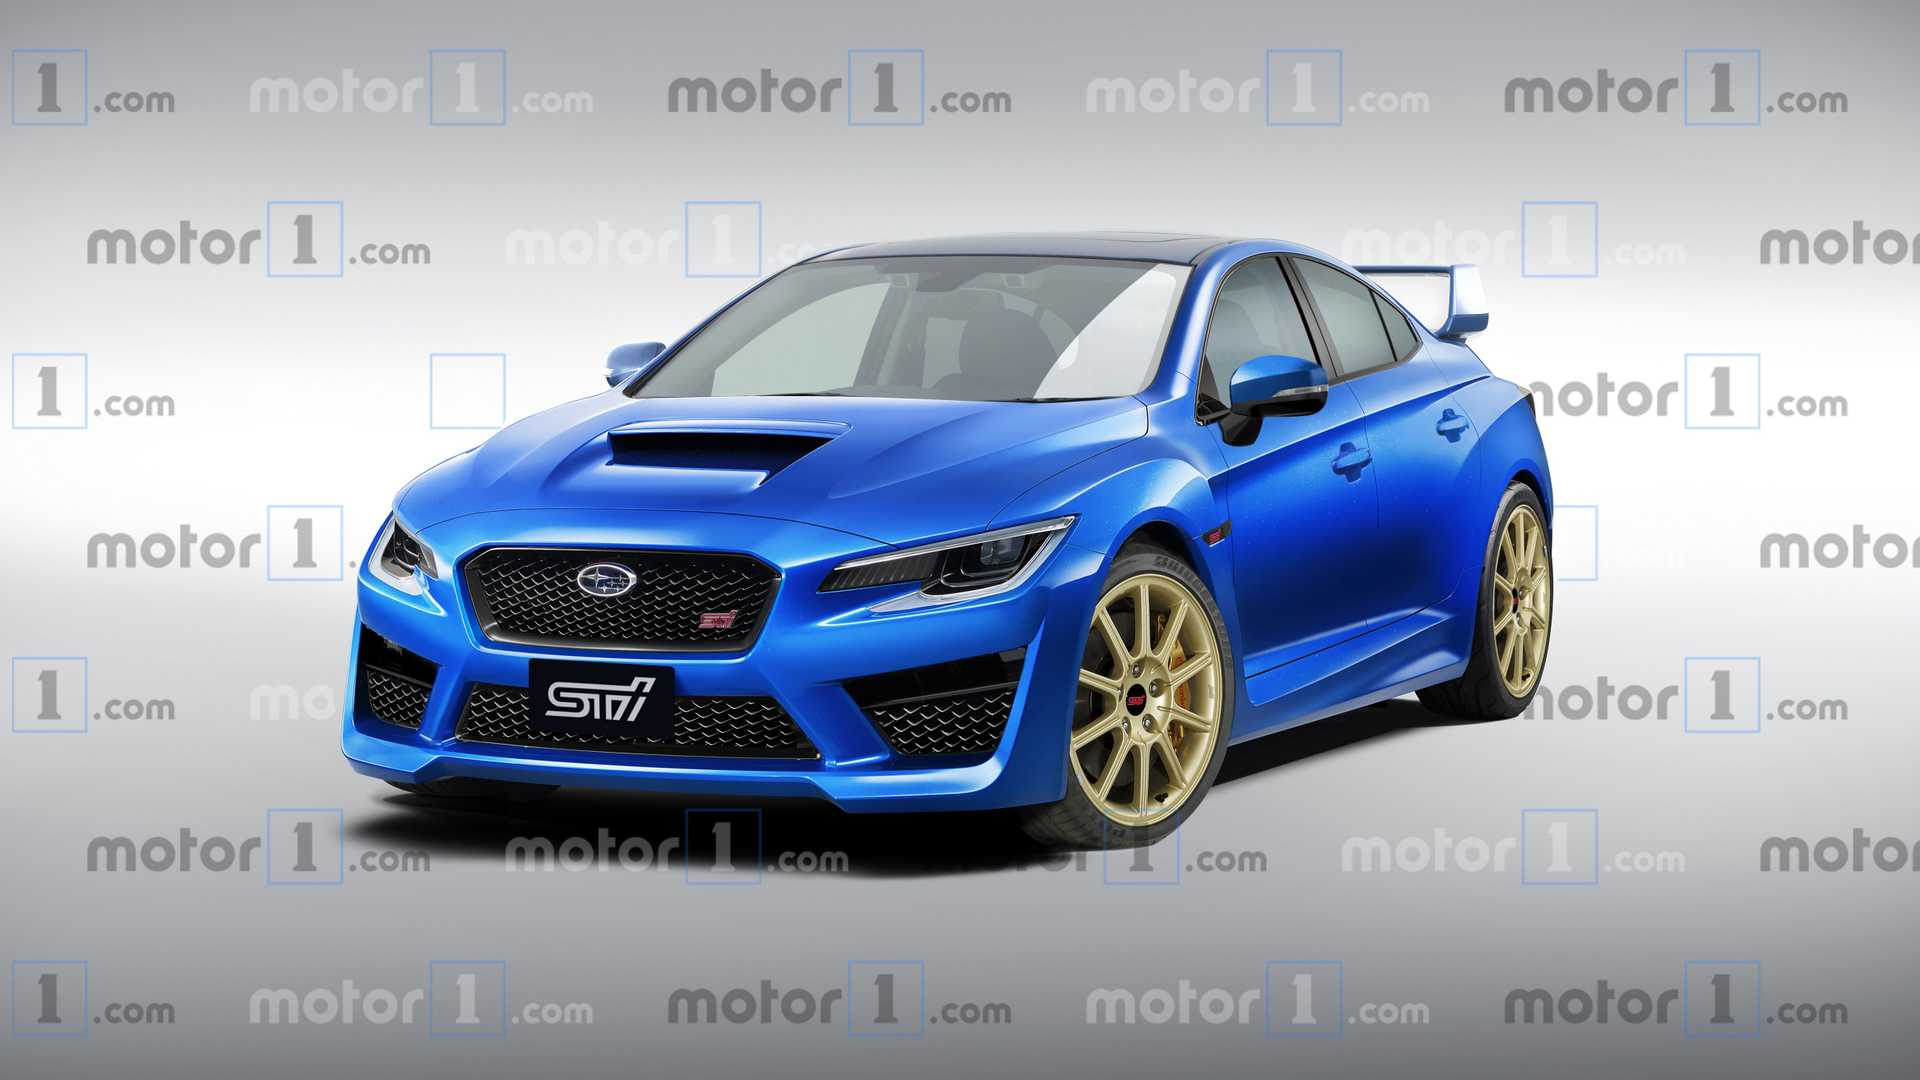 95 All New Subaru Turbo 2020 Redesign And Concept